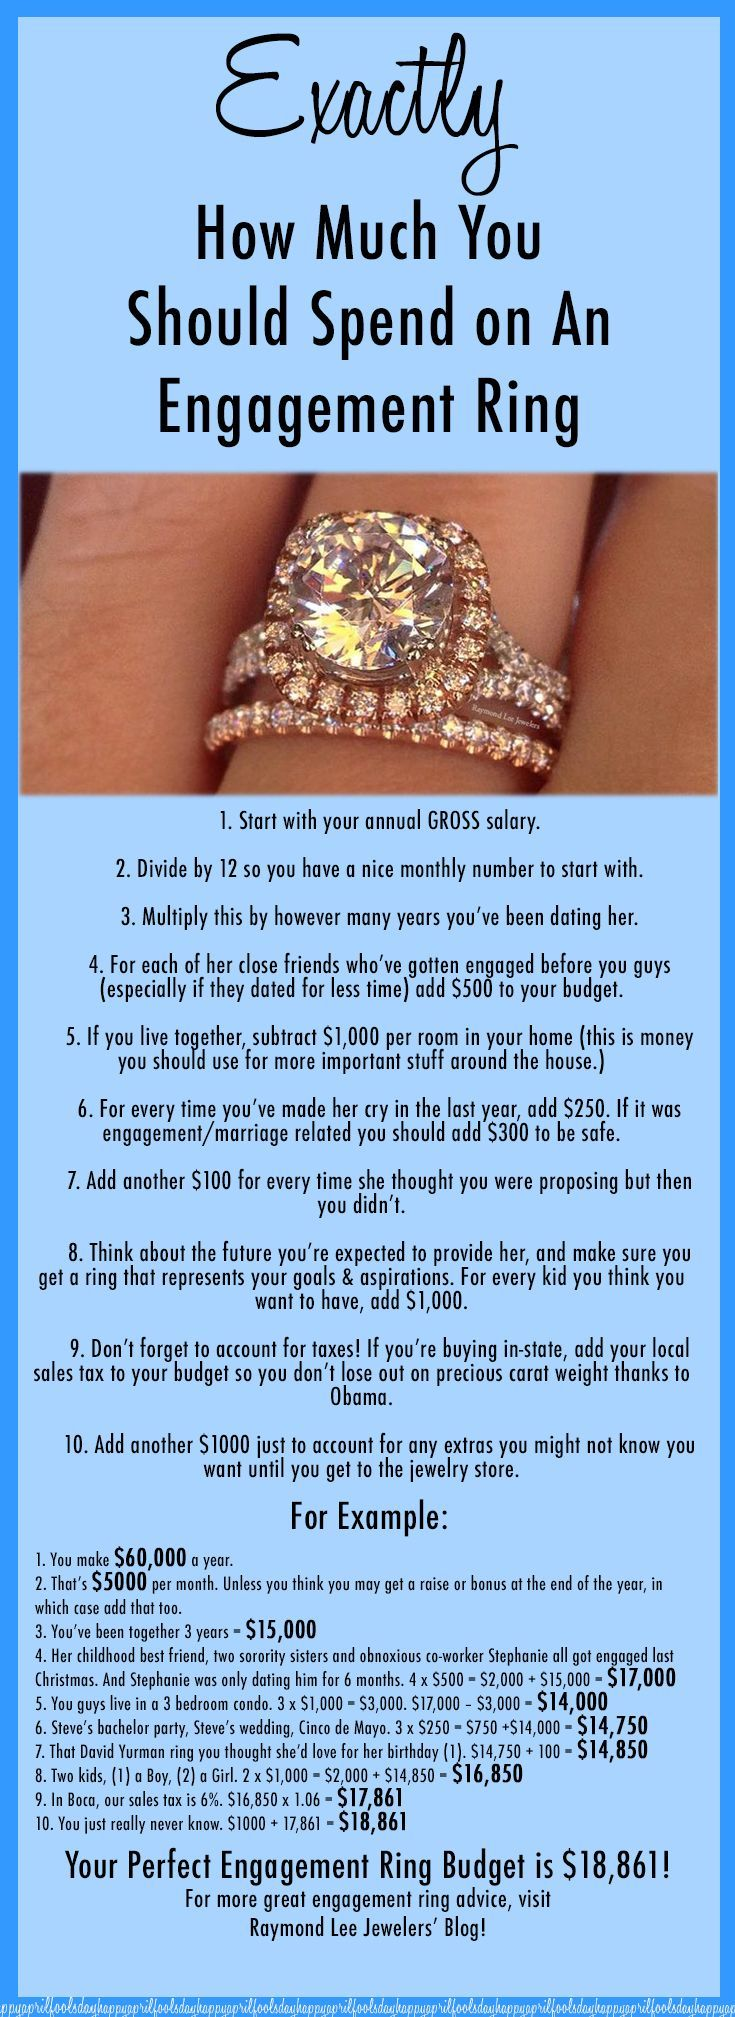 Exactly How Much To Spend on An Engagement Ring Engagement Ring